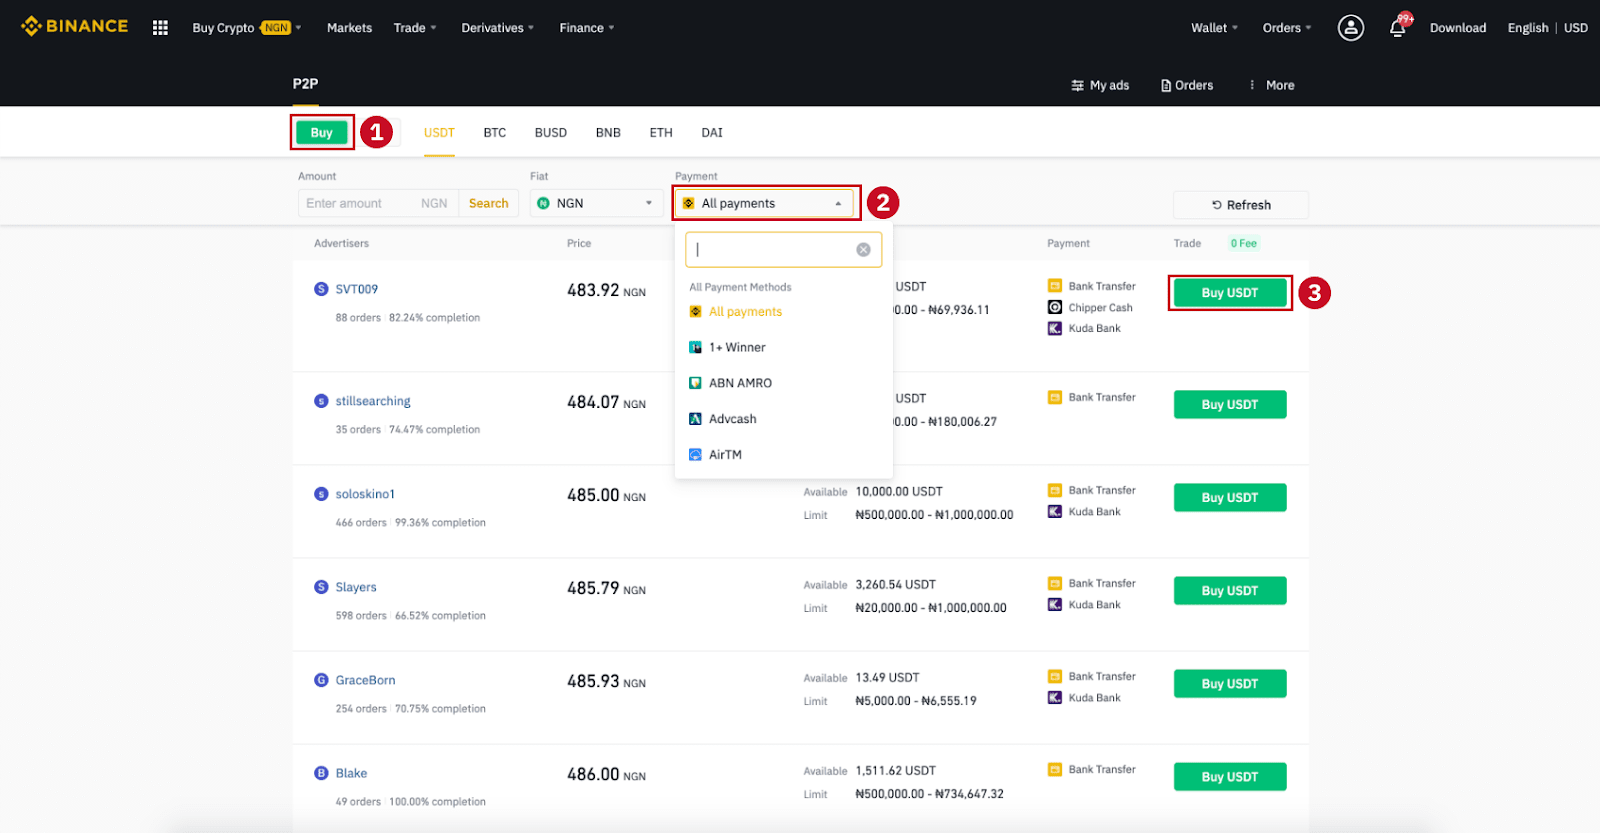 How to Open Account and Deposit at Binance